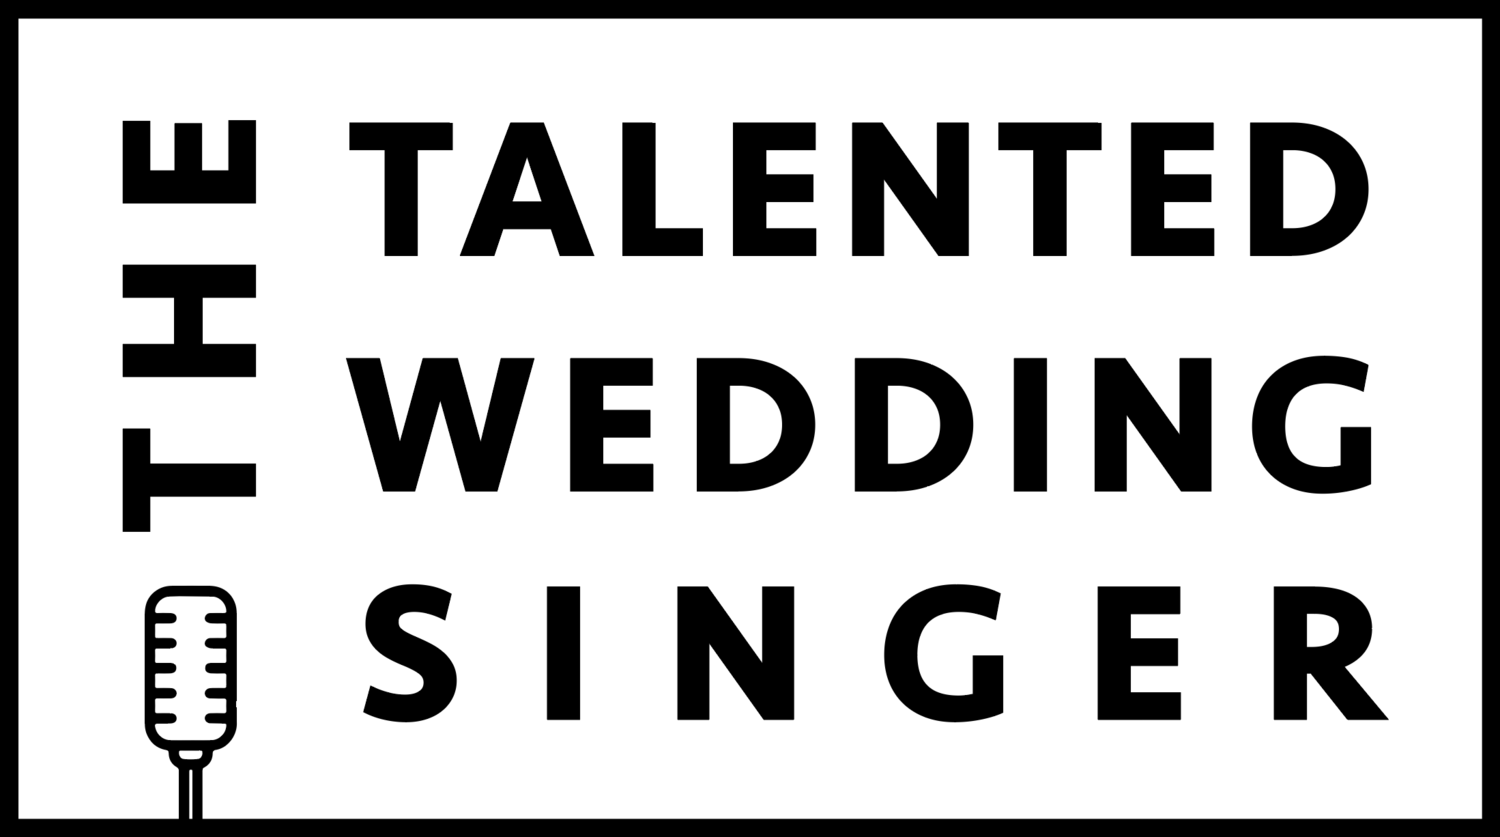 The Talented wedding singer